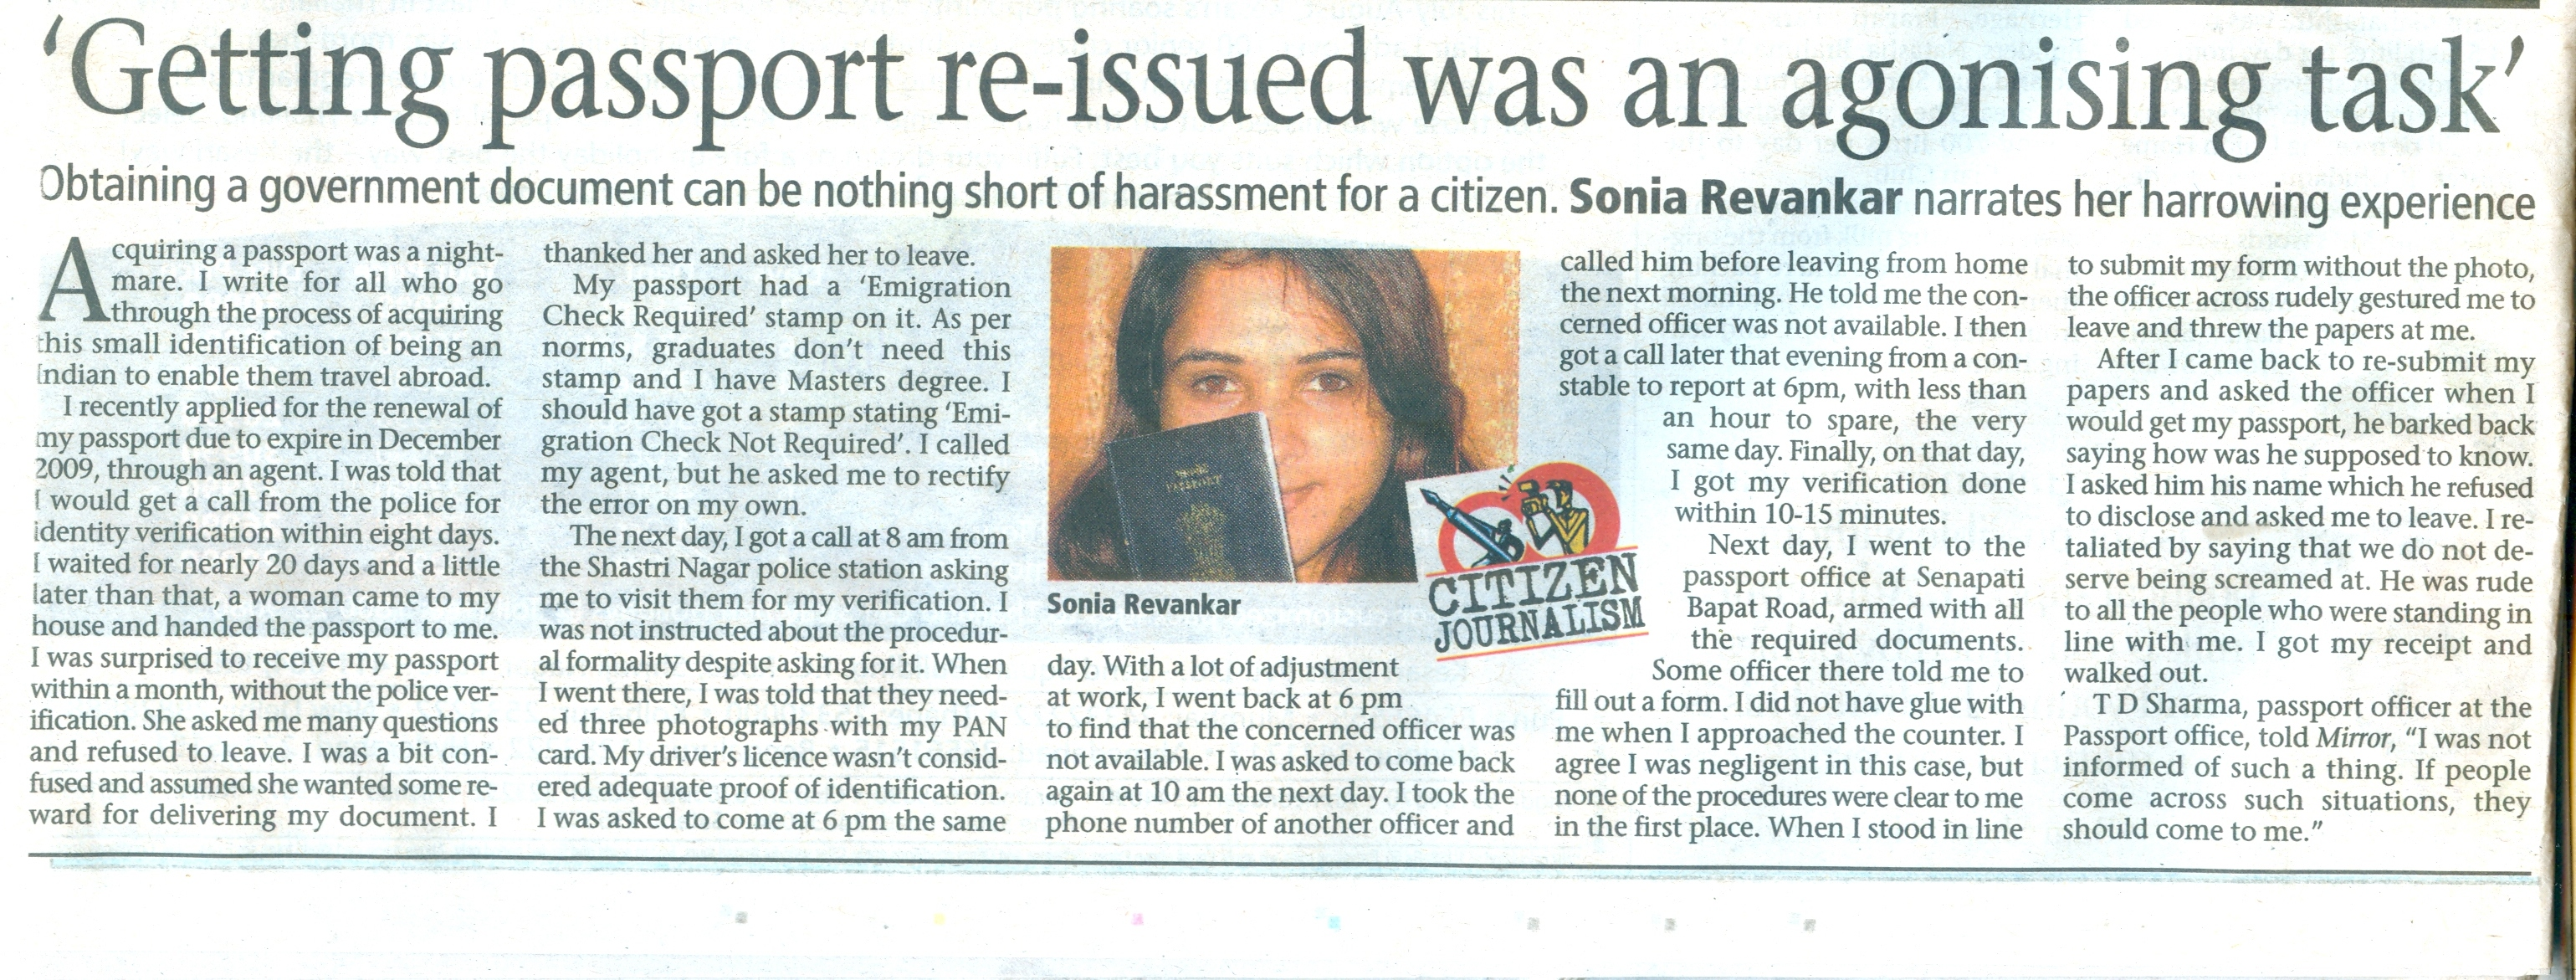 Article in Pune Mirror Aug 25, 2009